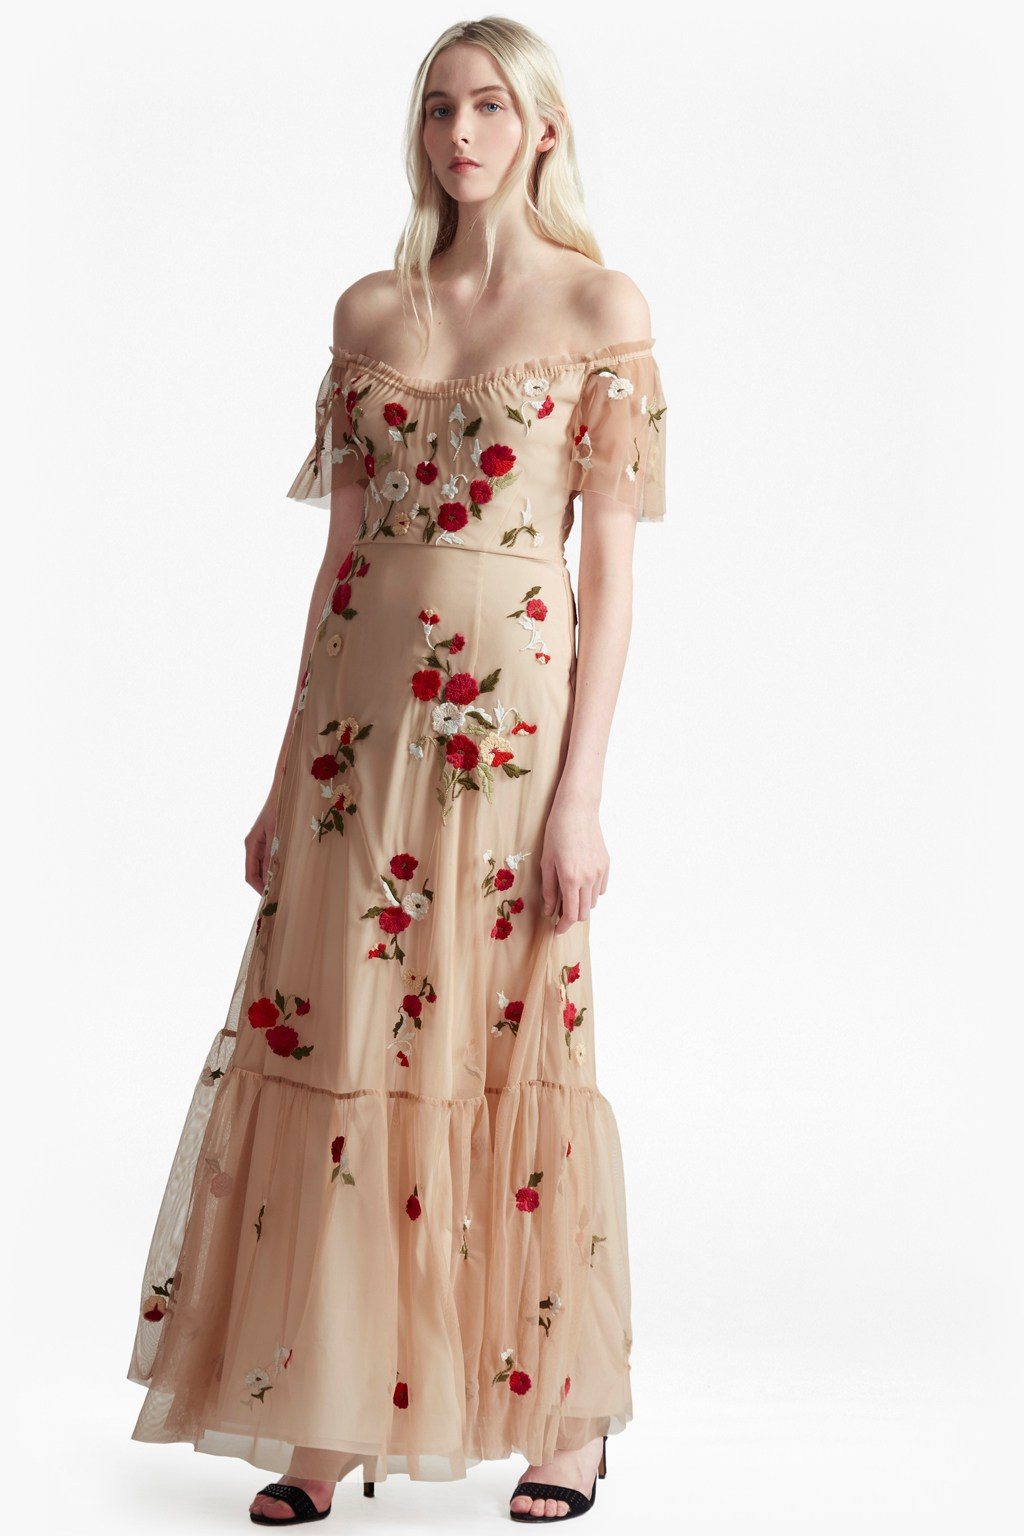 949e9522270 Viola Stitch Floral Embroidered Maxi Dress. loading images.